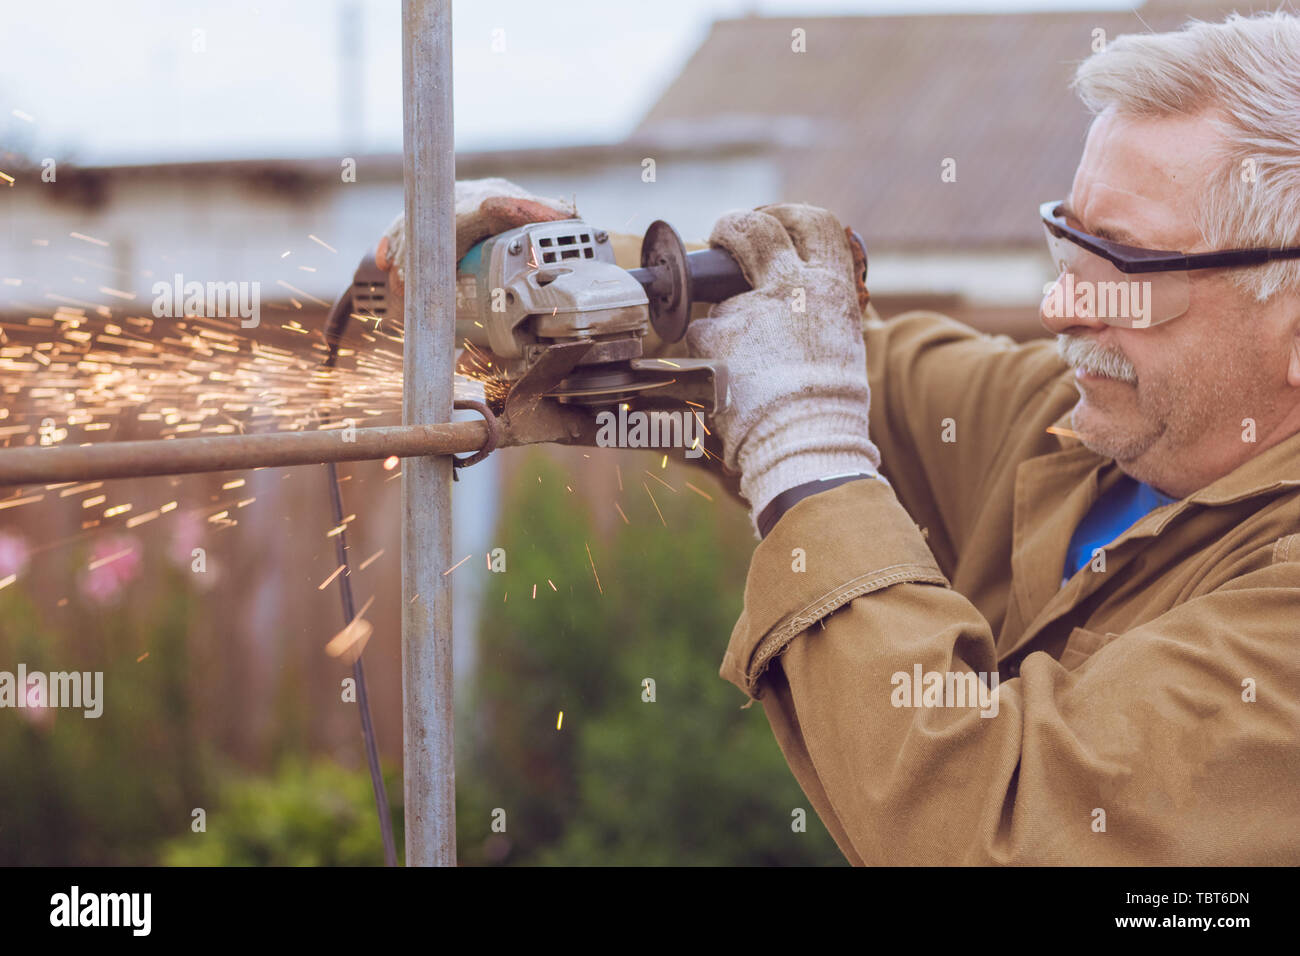 Hazardous work grinder, operating in the protection glasses metal cutting - Stock Image